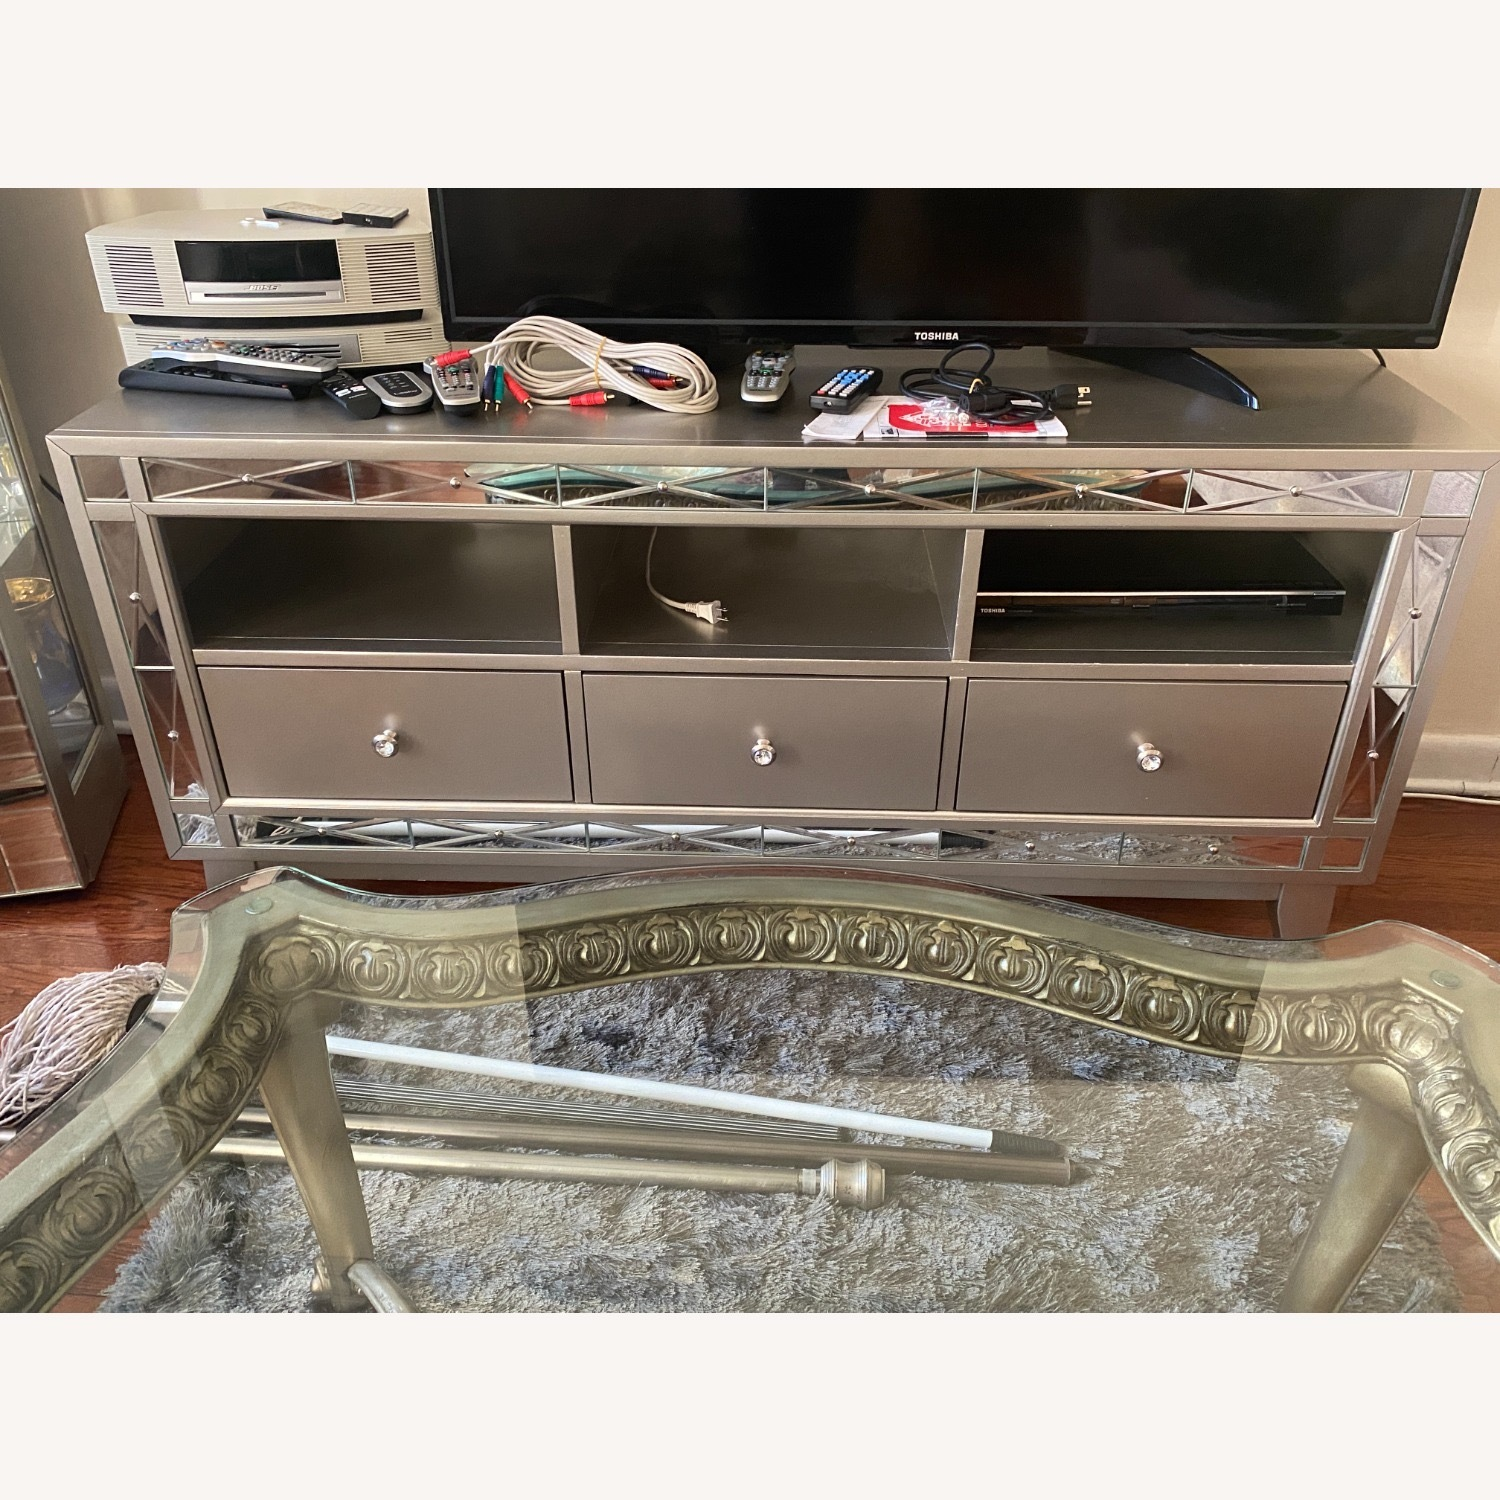 Bob's Discount Mirrored Media Storage/TV Stand - image-3